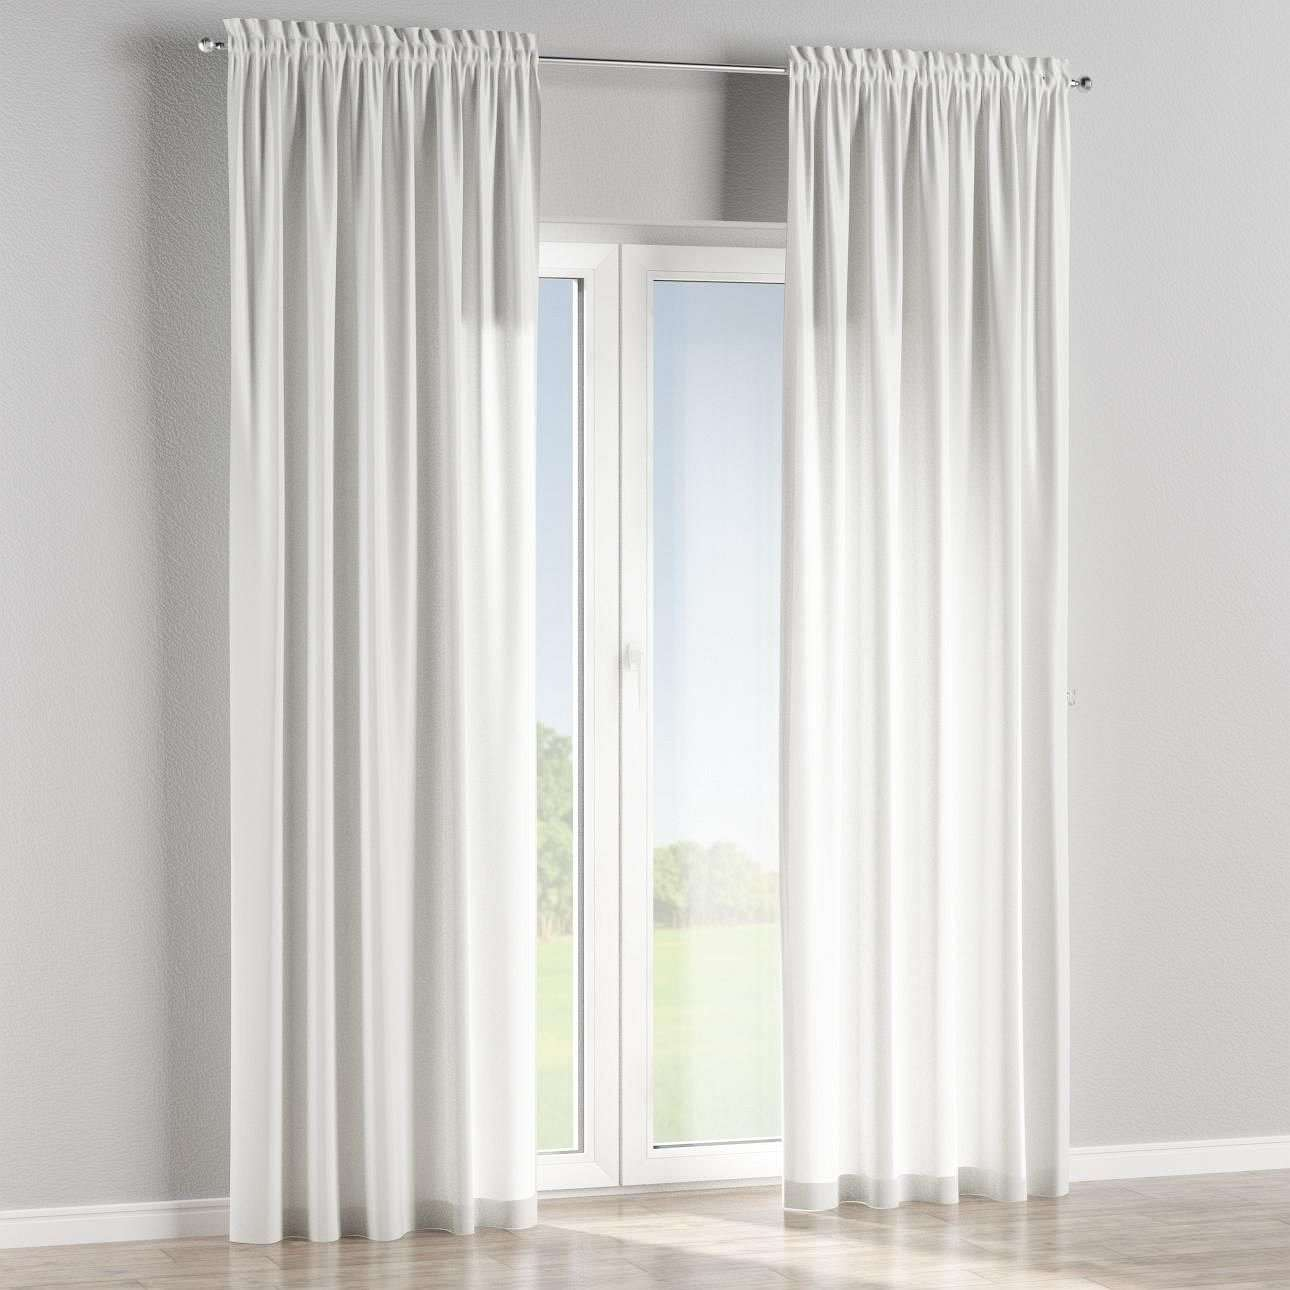 Slot and frill lined curtains in collection Bristol, fabric: 126-48